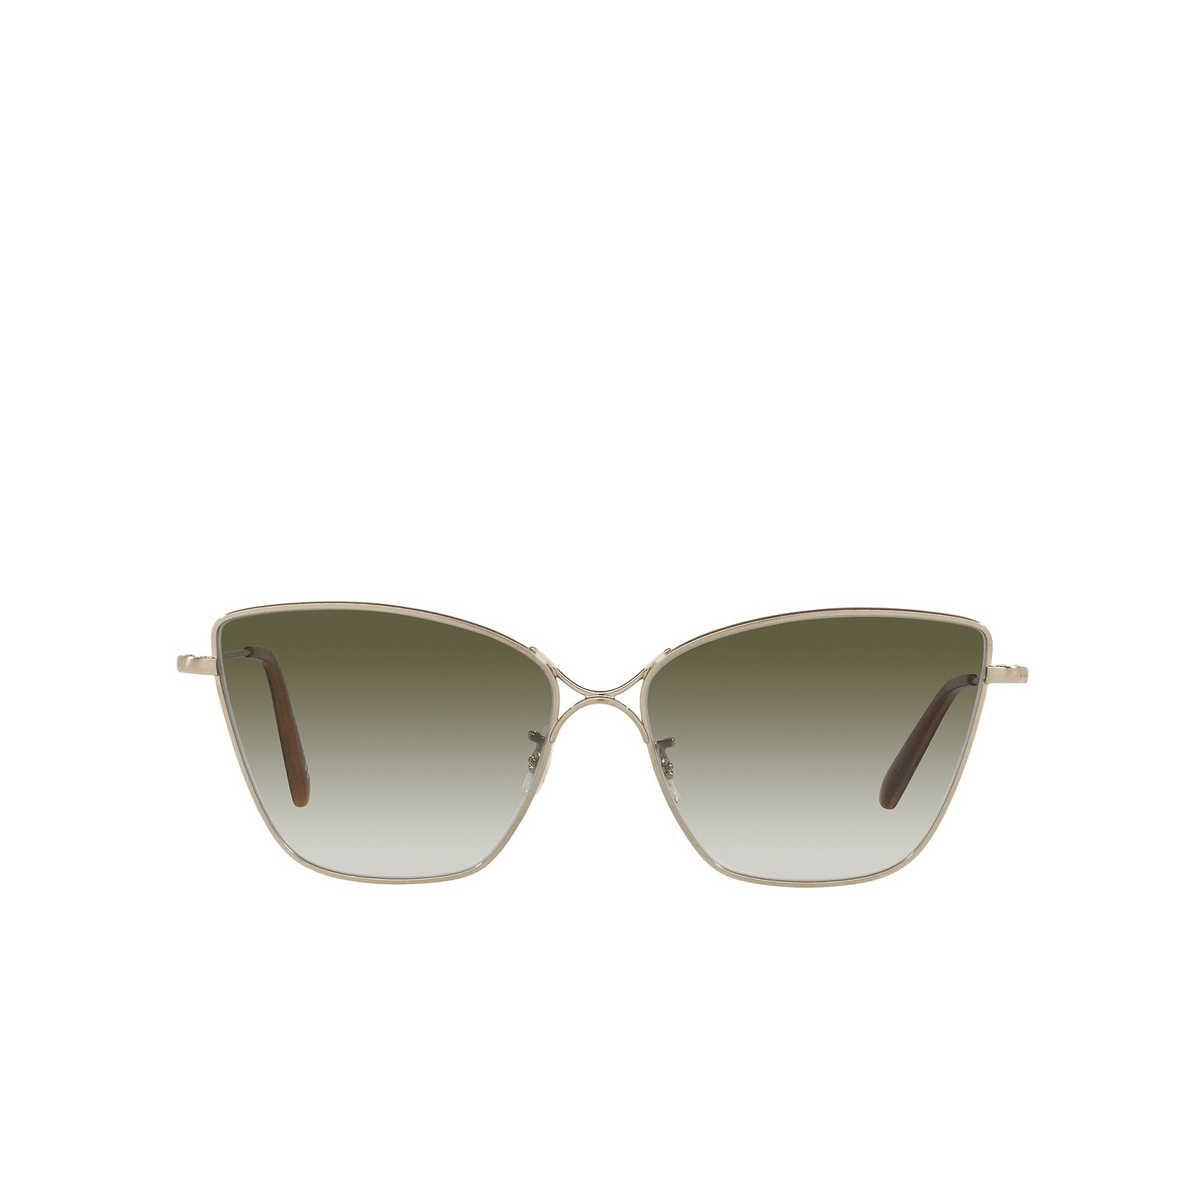 Oliver Peoples® Butterfly Sunglasses: Marlyse OV1288S color Brushed Gold 52718E - front view.